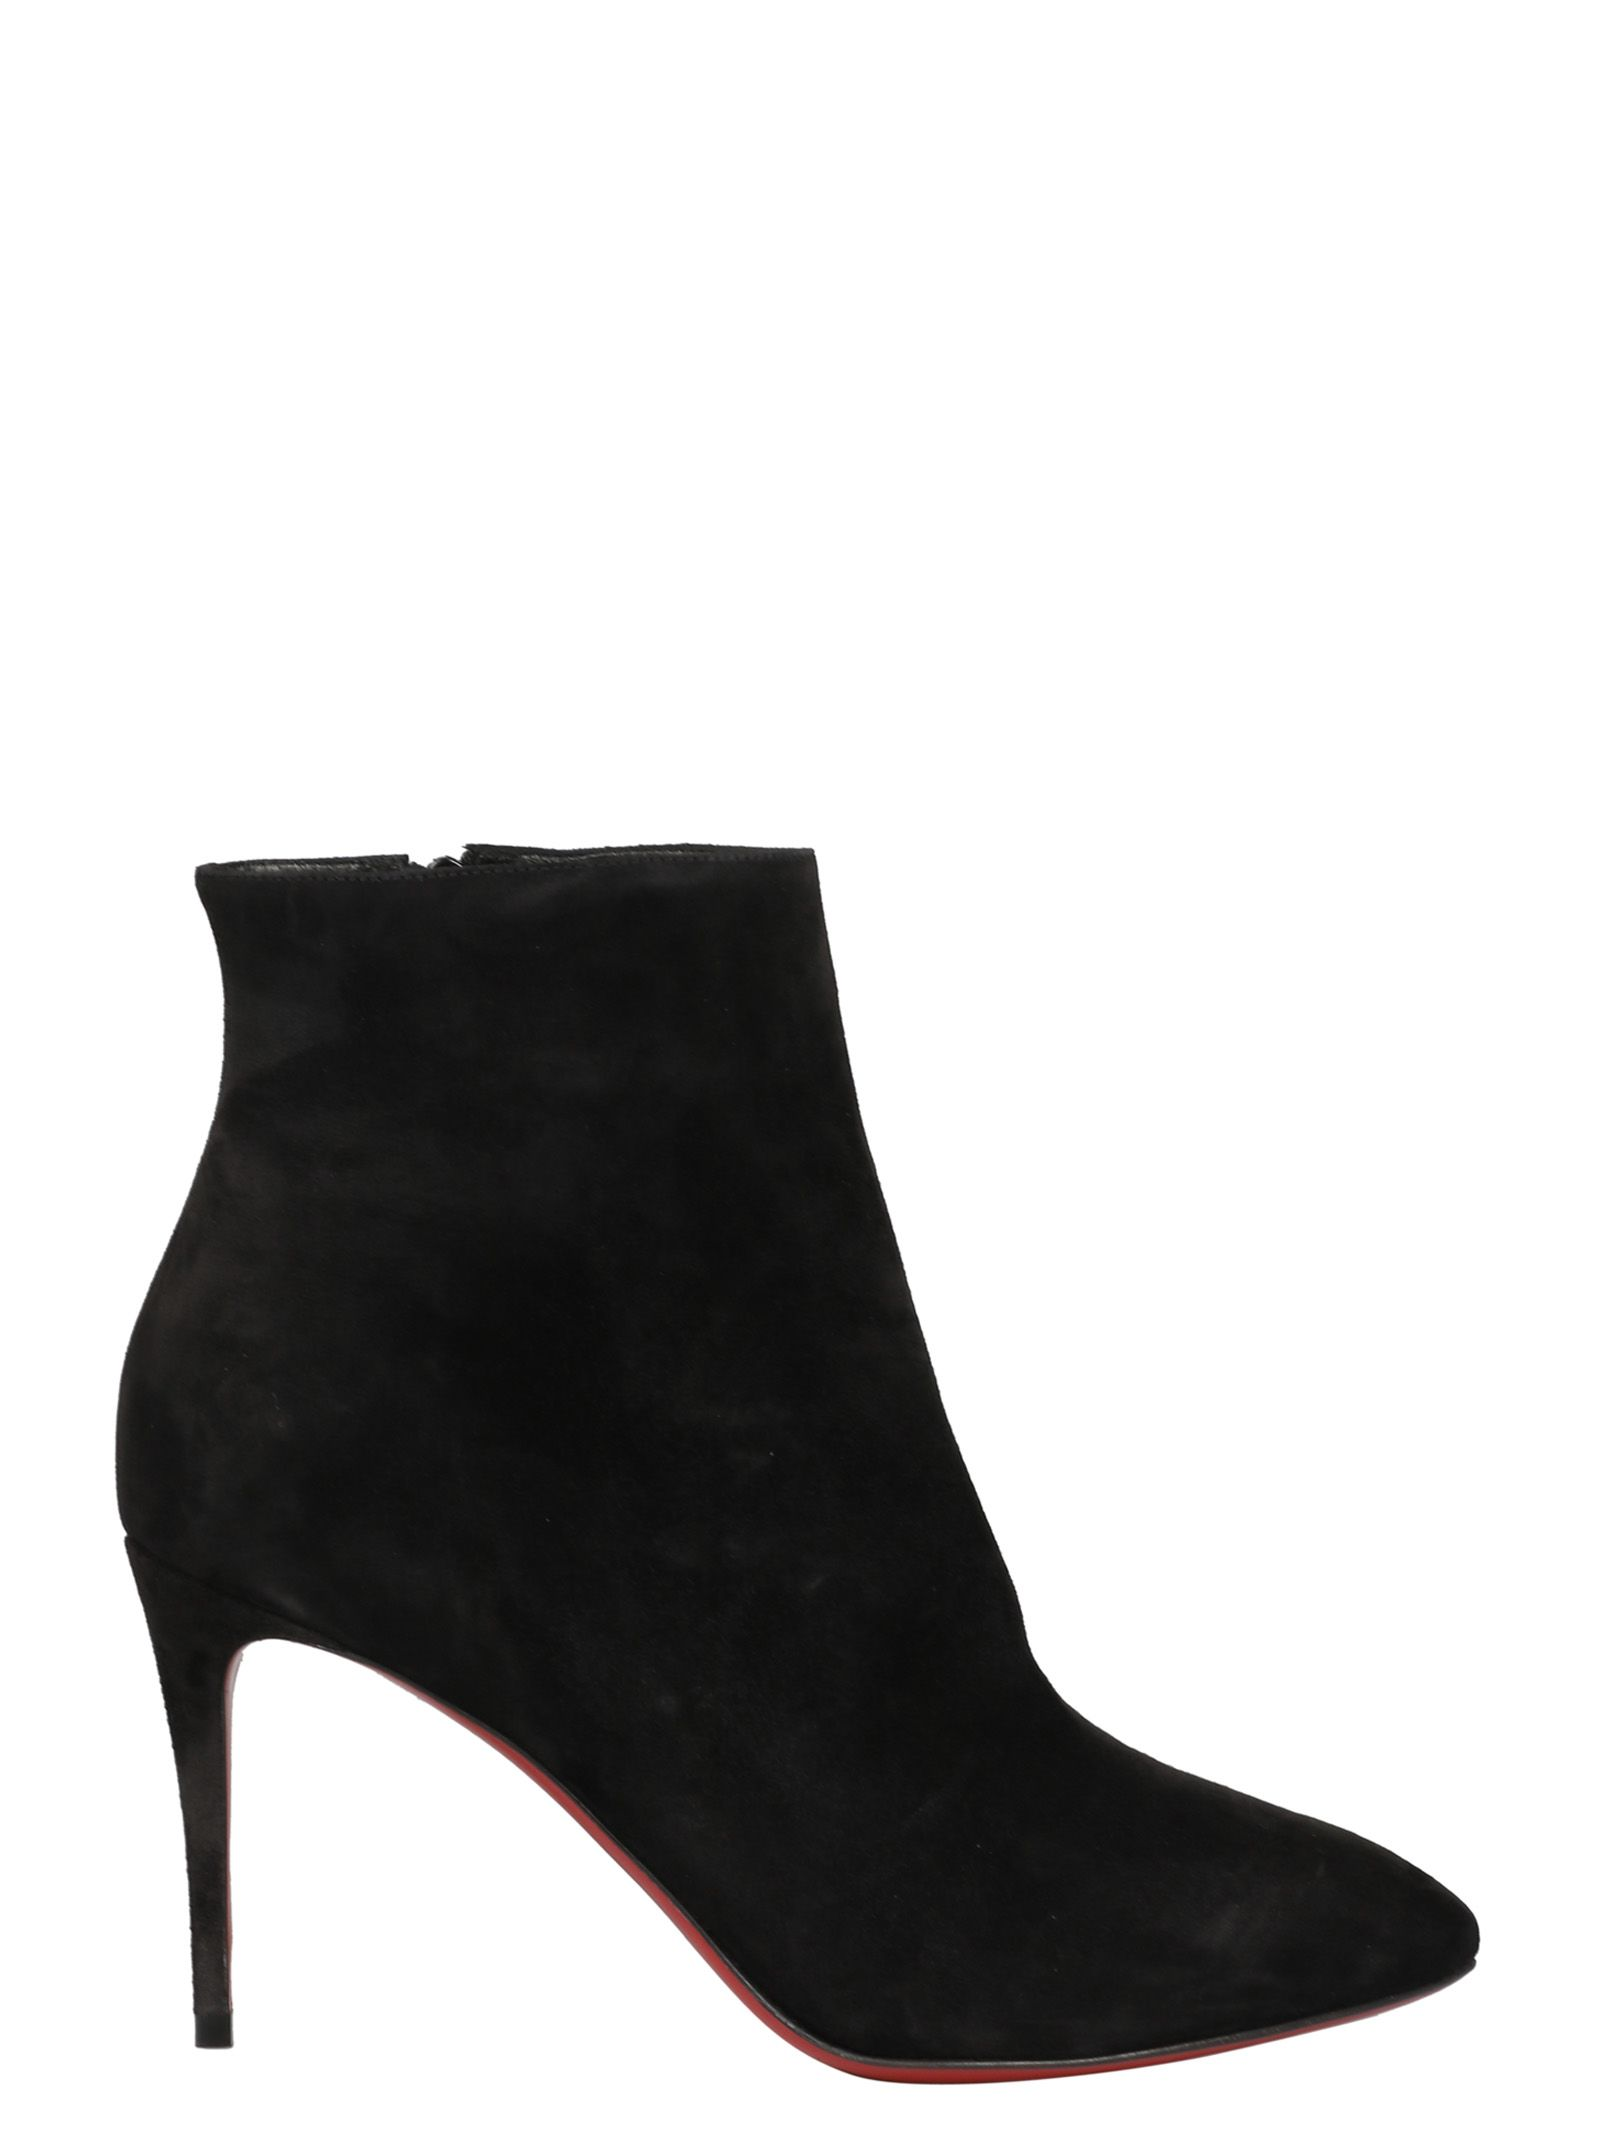 ELOISE ANKLE BOOTS